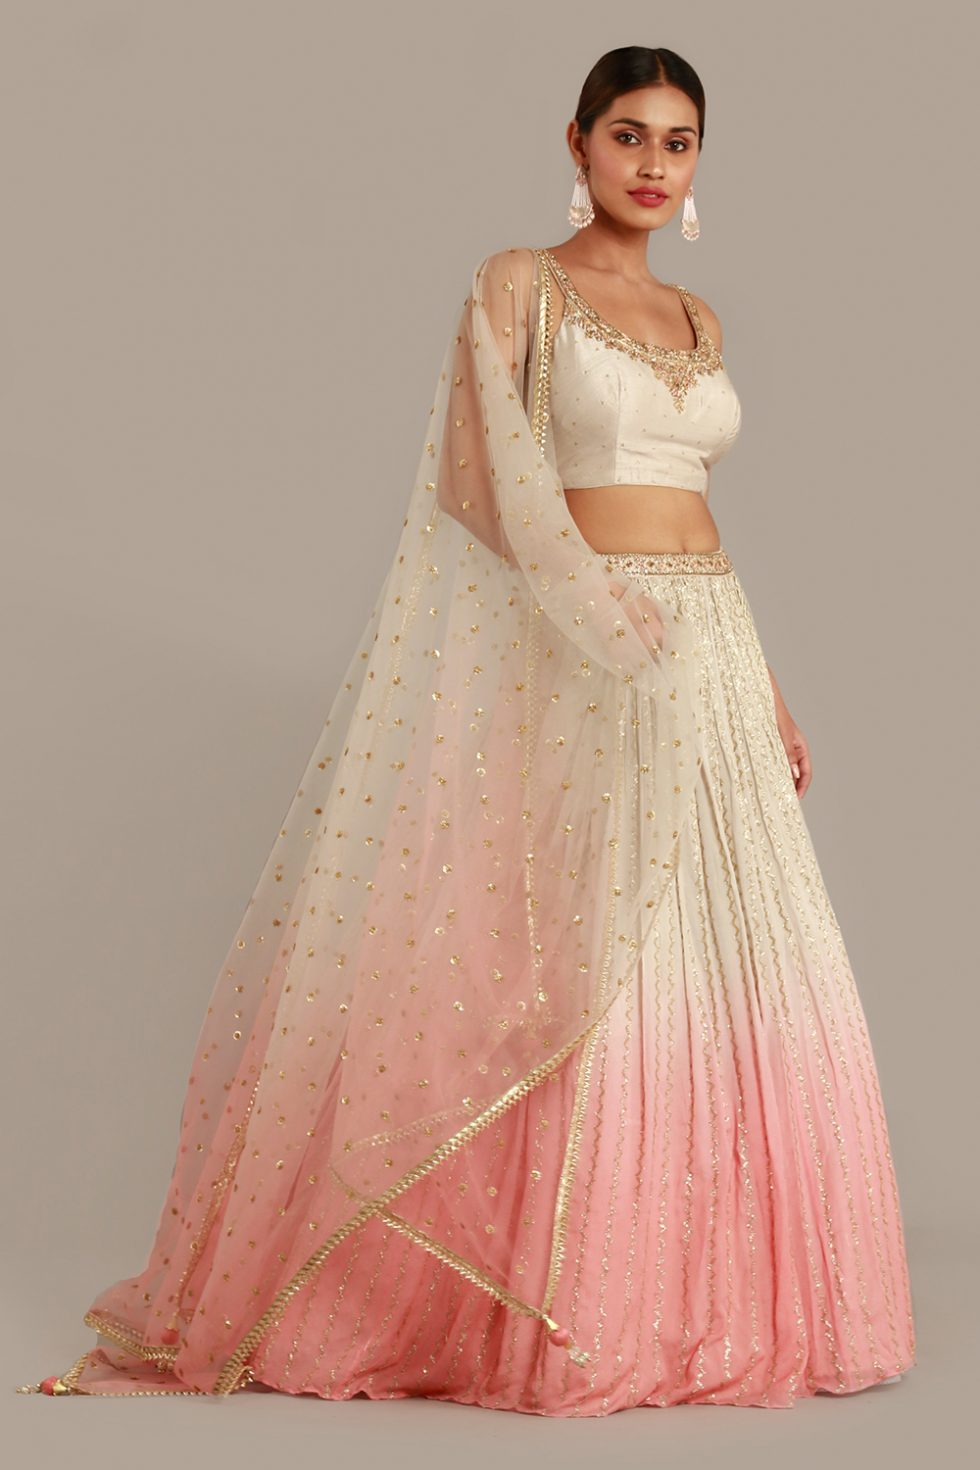 Pastel grey to pink ombré lehenga set with gold highlights, matching choli and ombré dupatta with gold butis